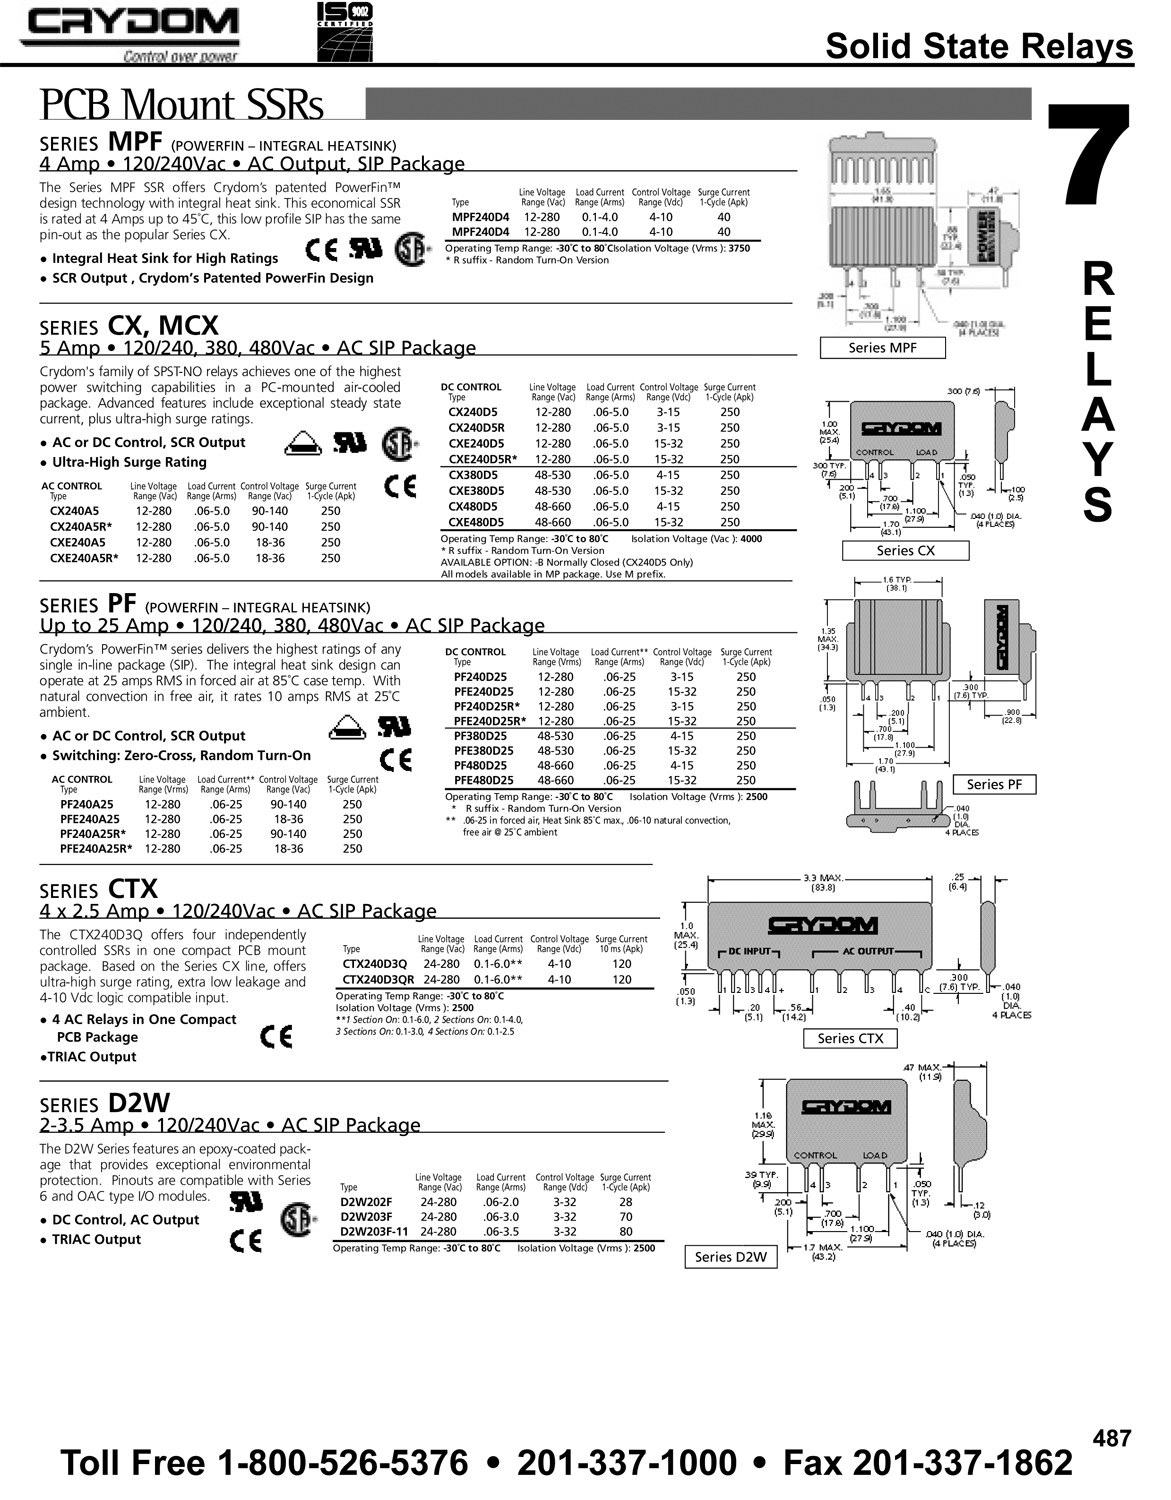 relay specialties catalog - relays    solid state